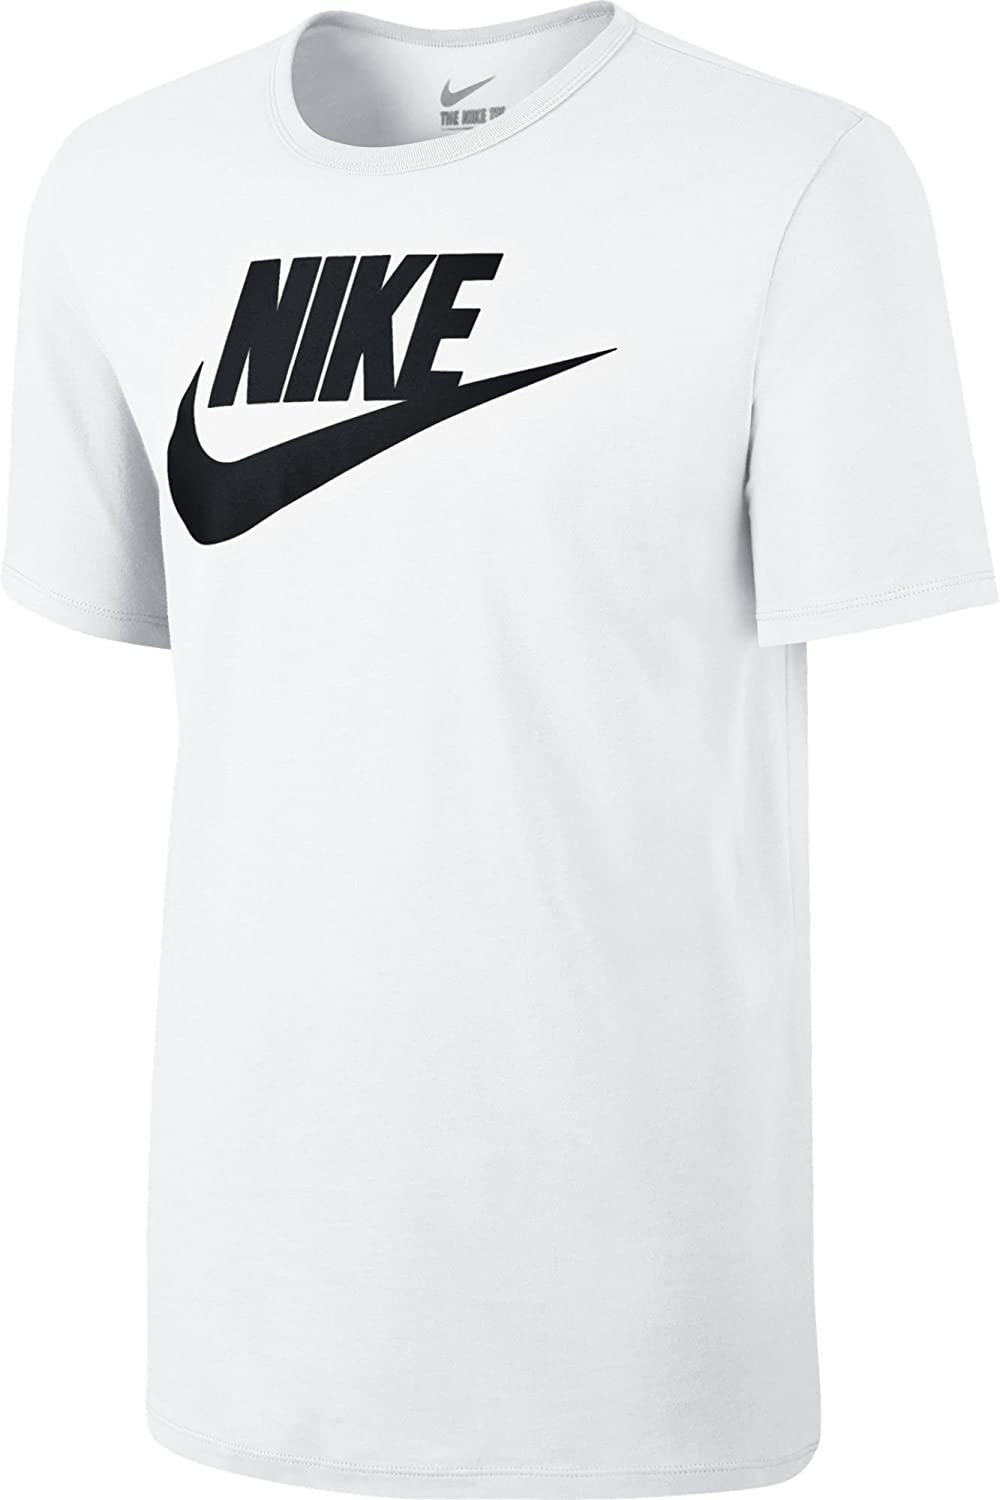 comprar genuino estilo novedoso diseño moderno Nike Men's Icon Futura Short Sleeve Top: Amazon.co.uk: Clothing